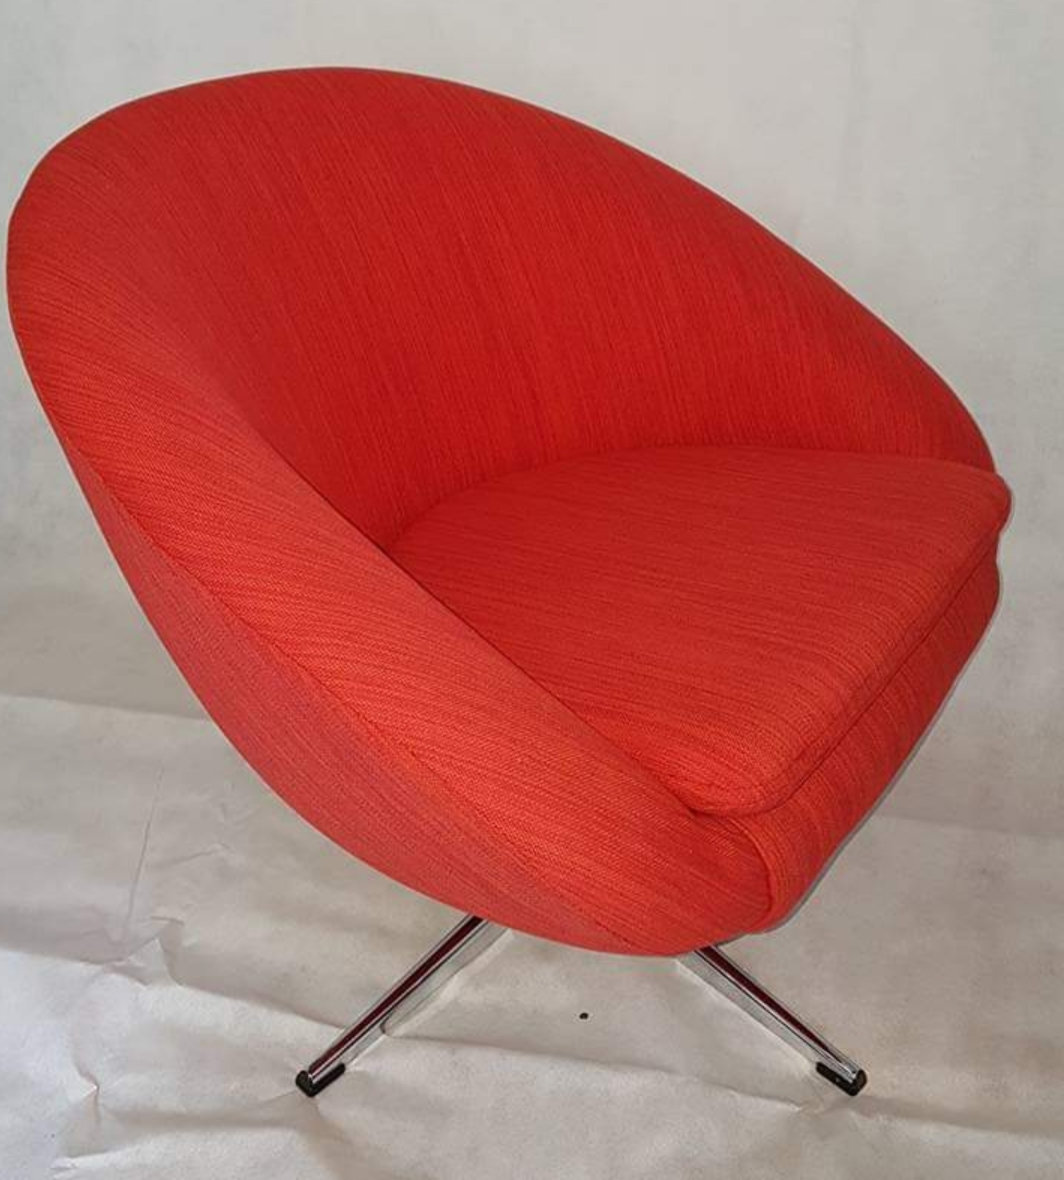 Swell 1960S Retro Swivel Chair Squirreltailoven Fun Painted Chair Ideas Images Squirreltailovenorg